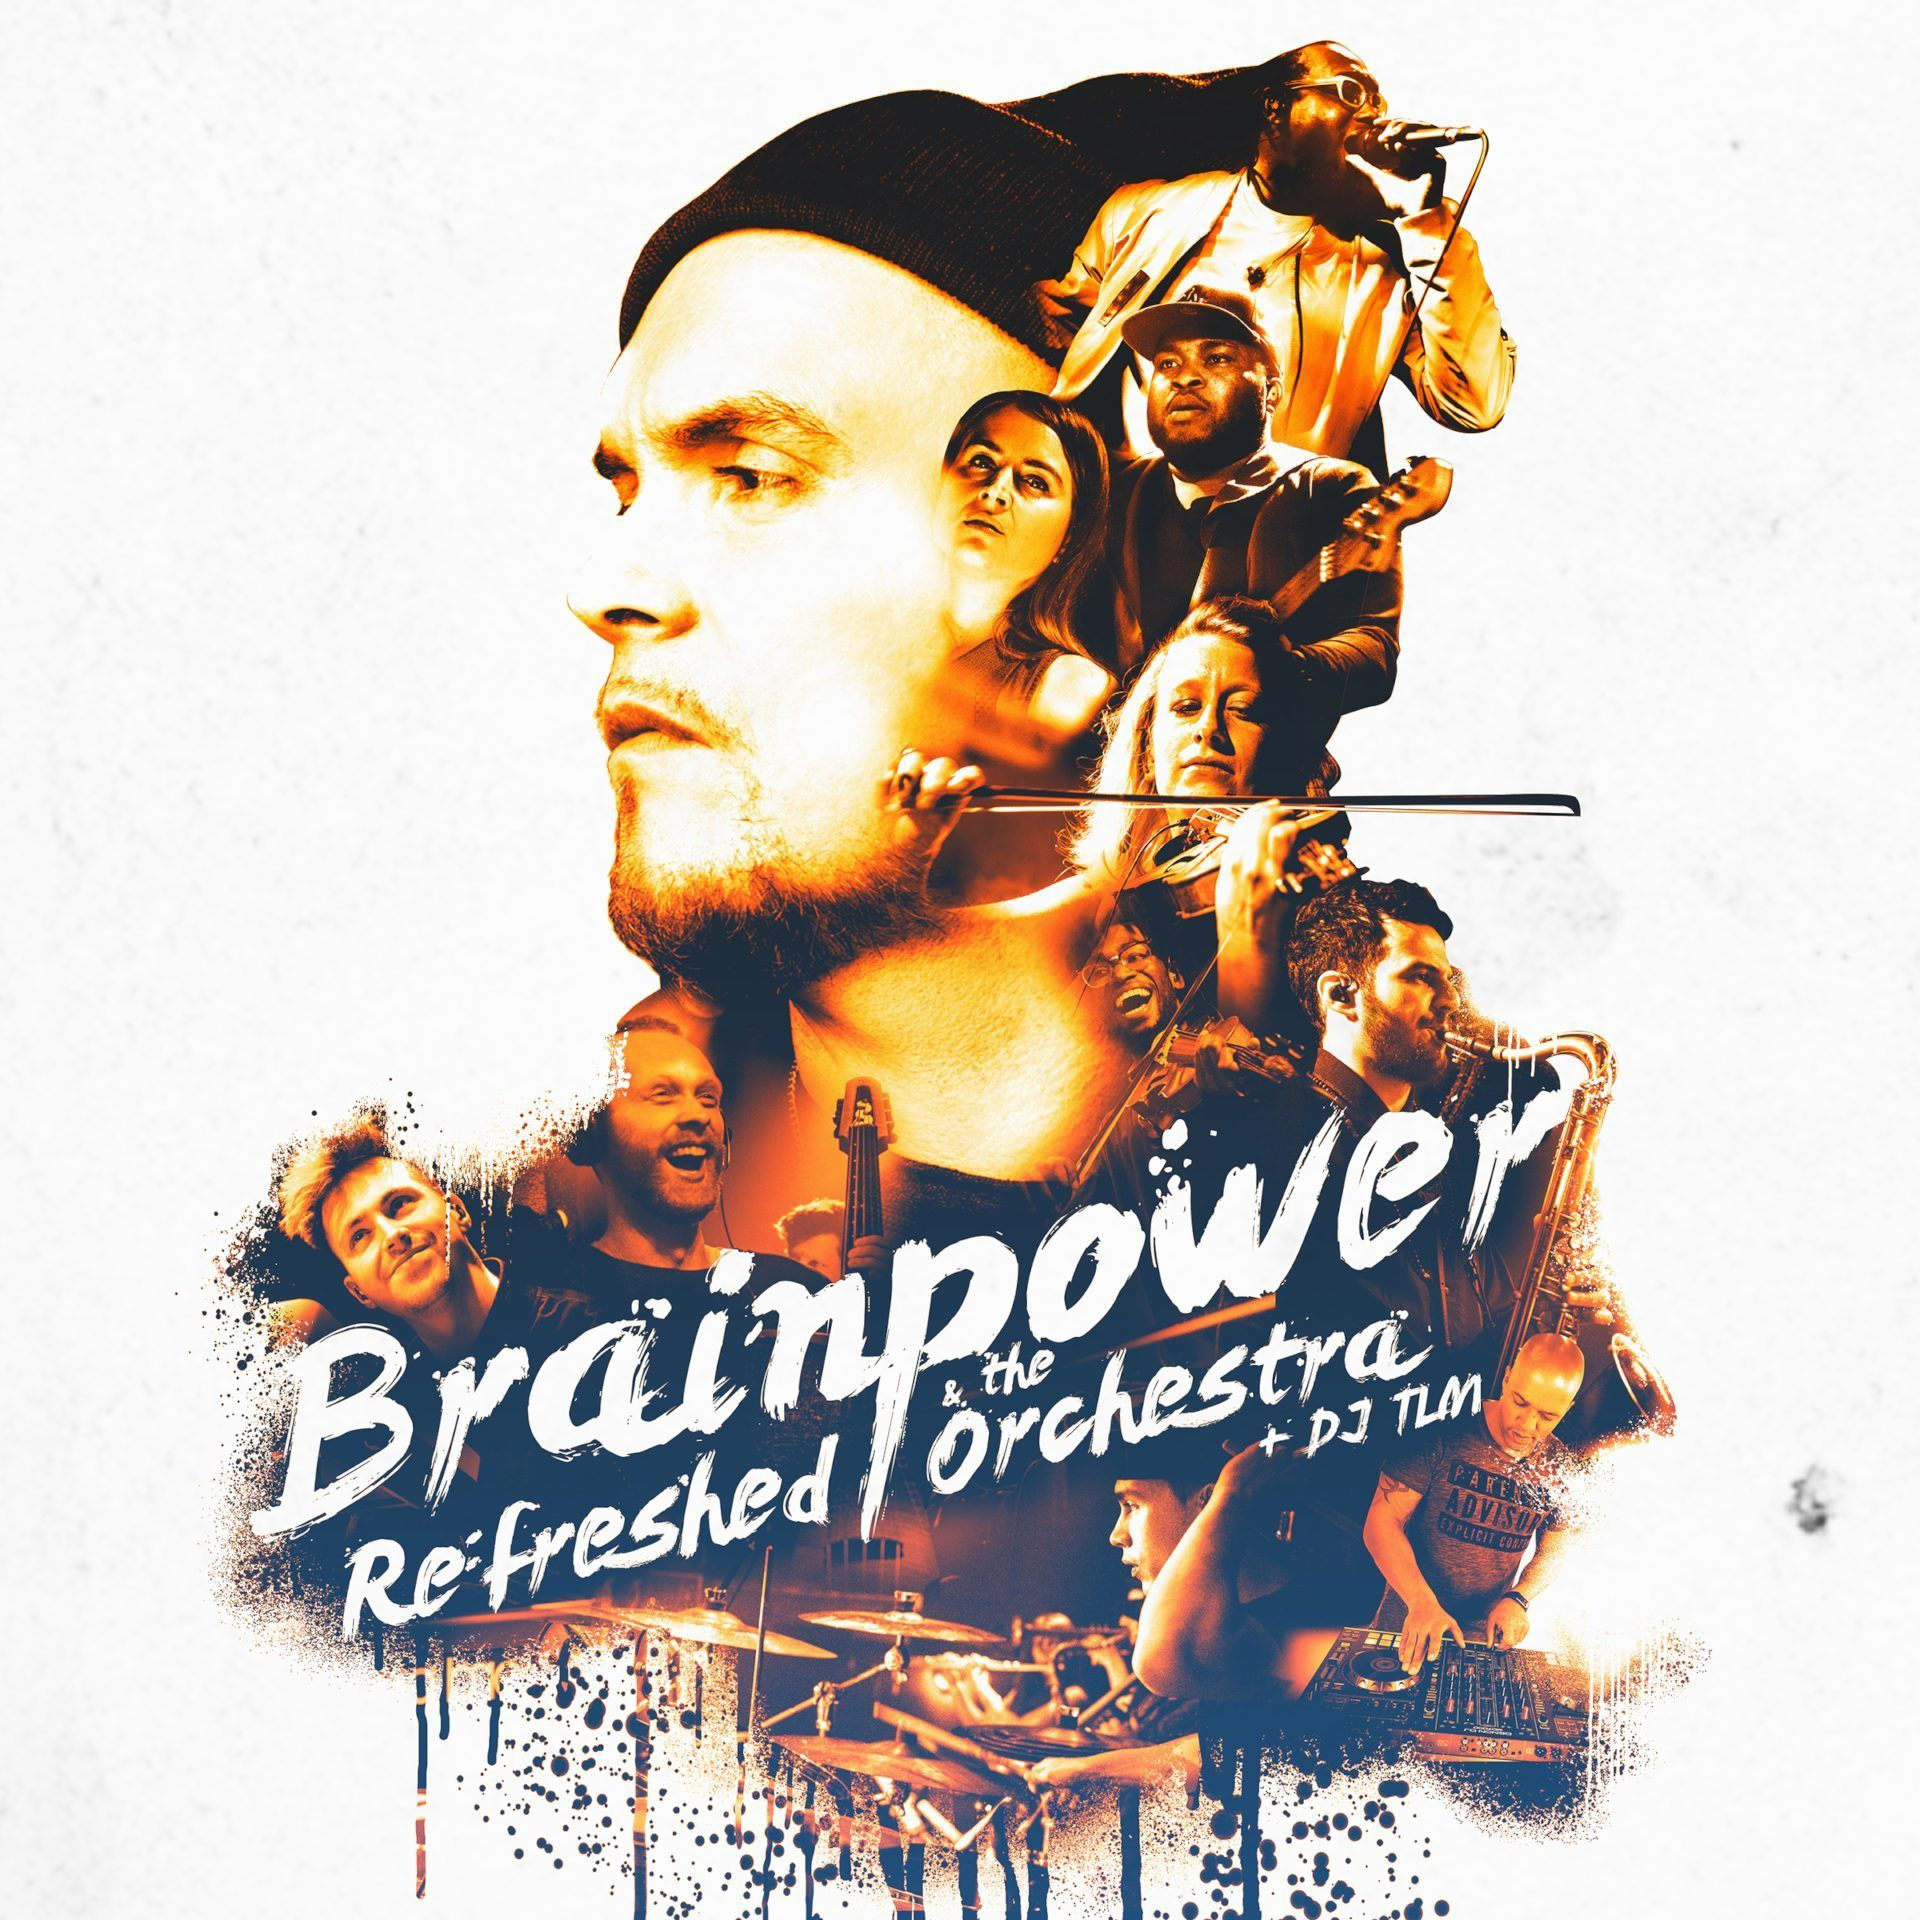 BRAINPOWER X RE:FRESHED ORCHESTRA